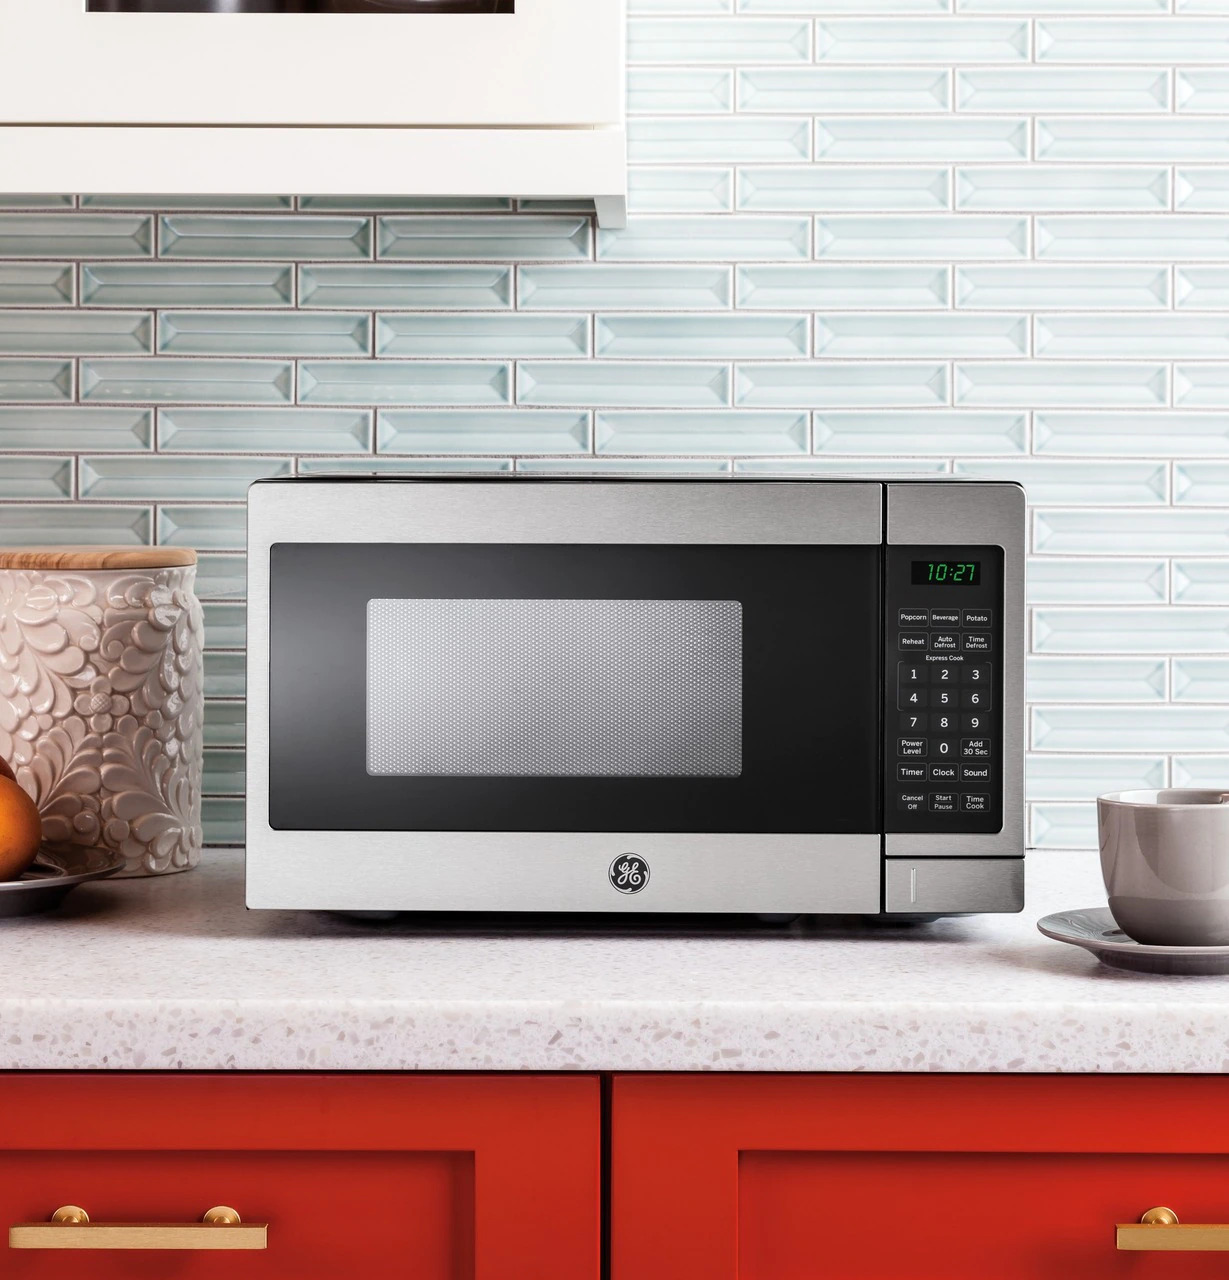 general electric 0 7 cu ft microwave oven